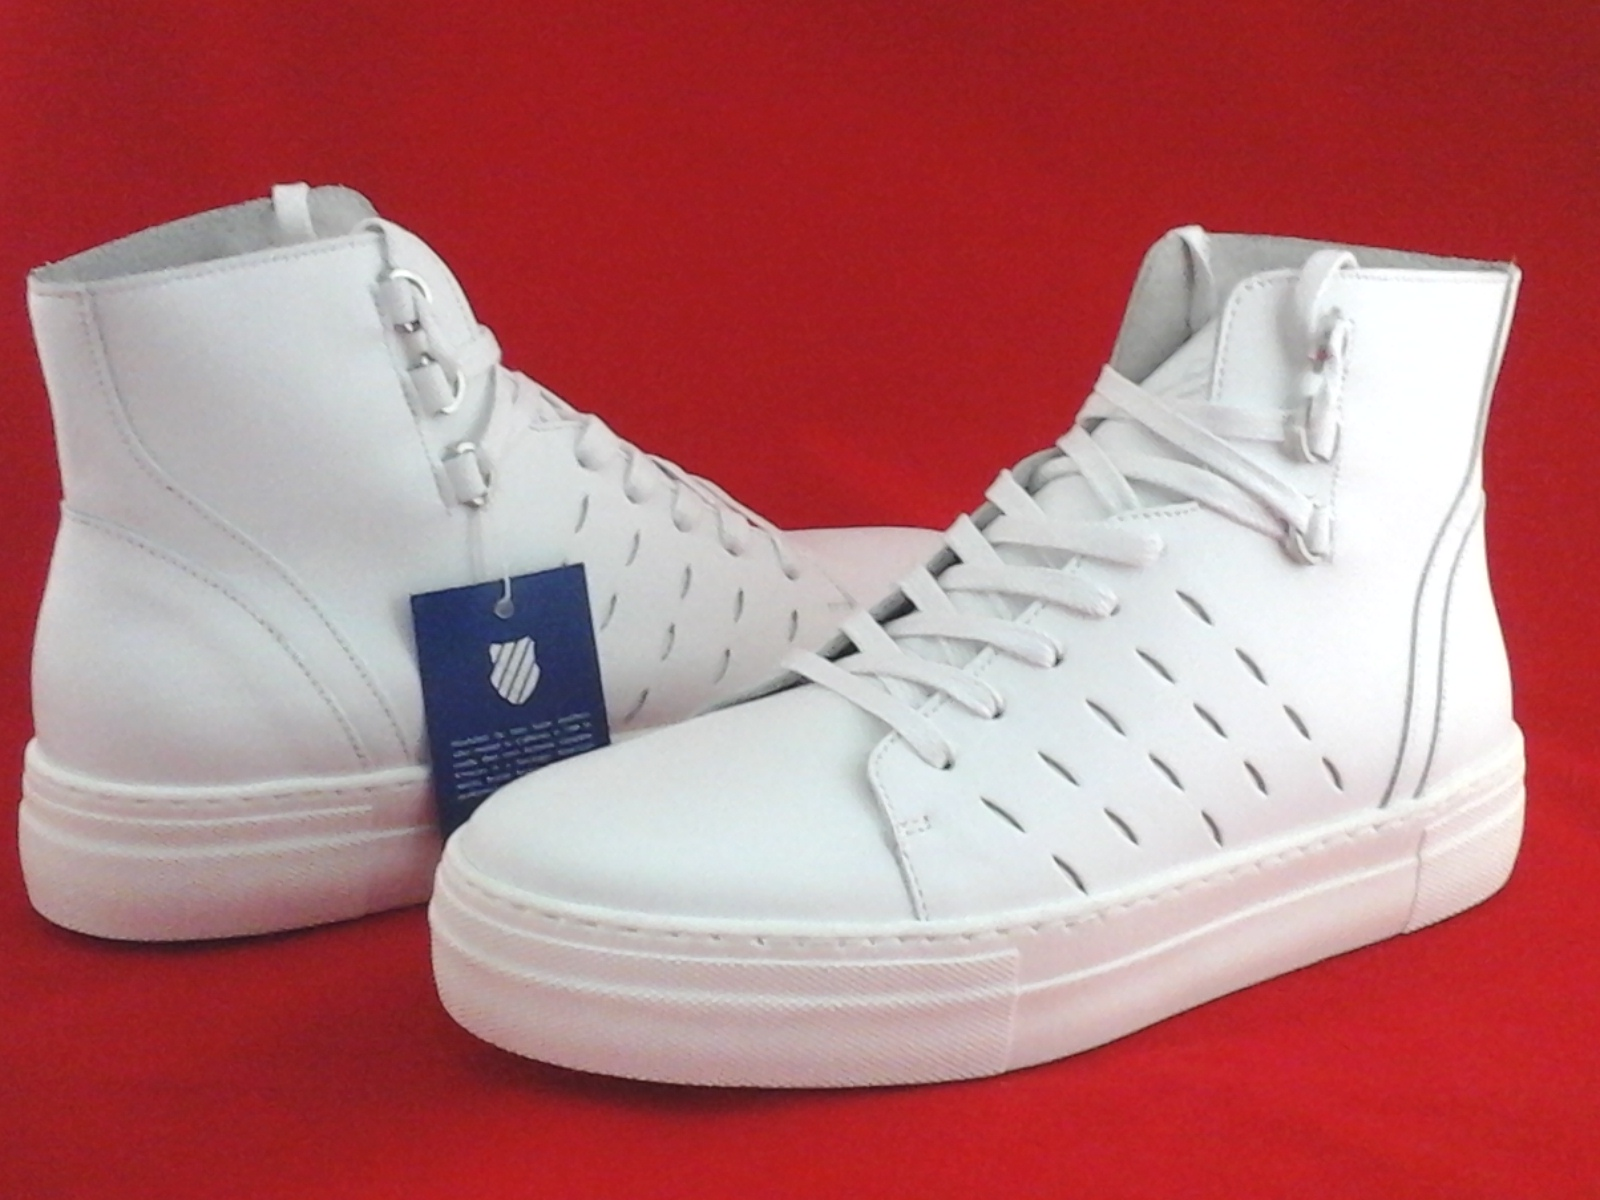 b219d3567d062 K-SWISS High Top Shoes White Leather Basketball Sneakers Women's US ...